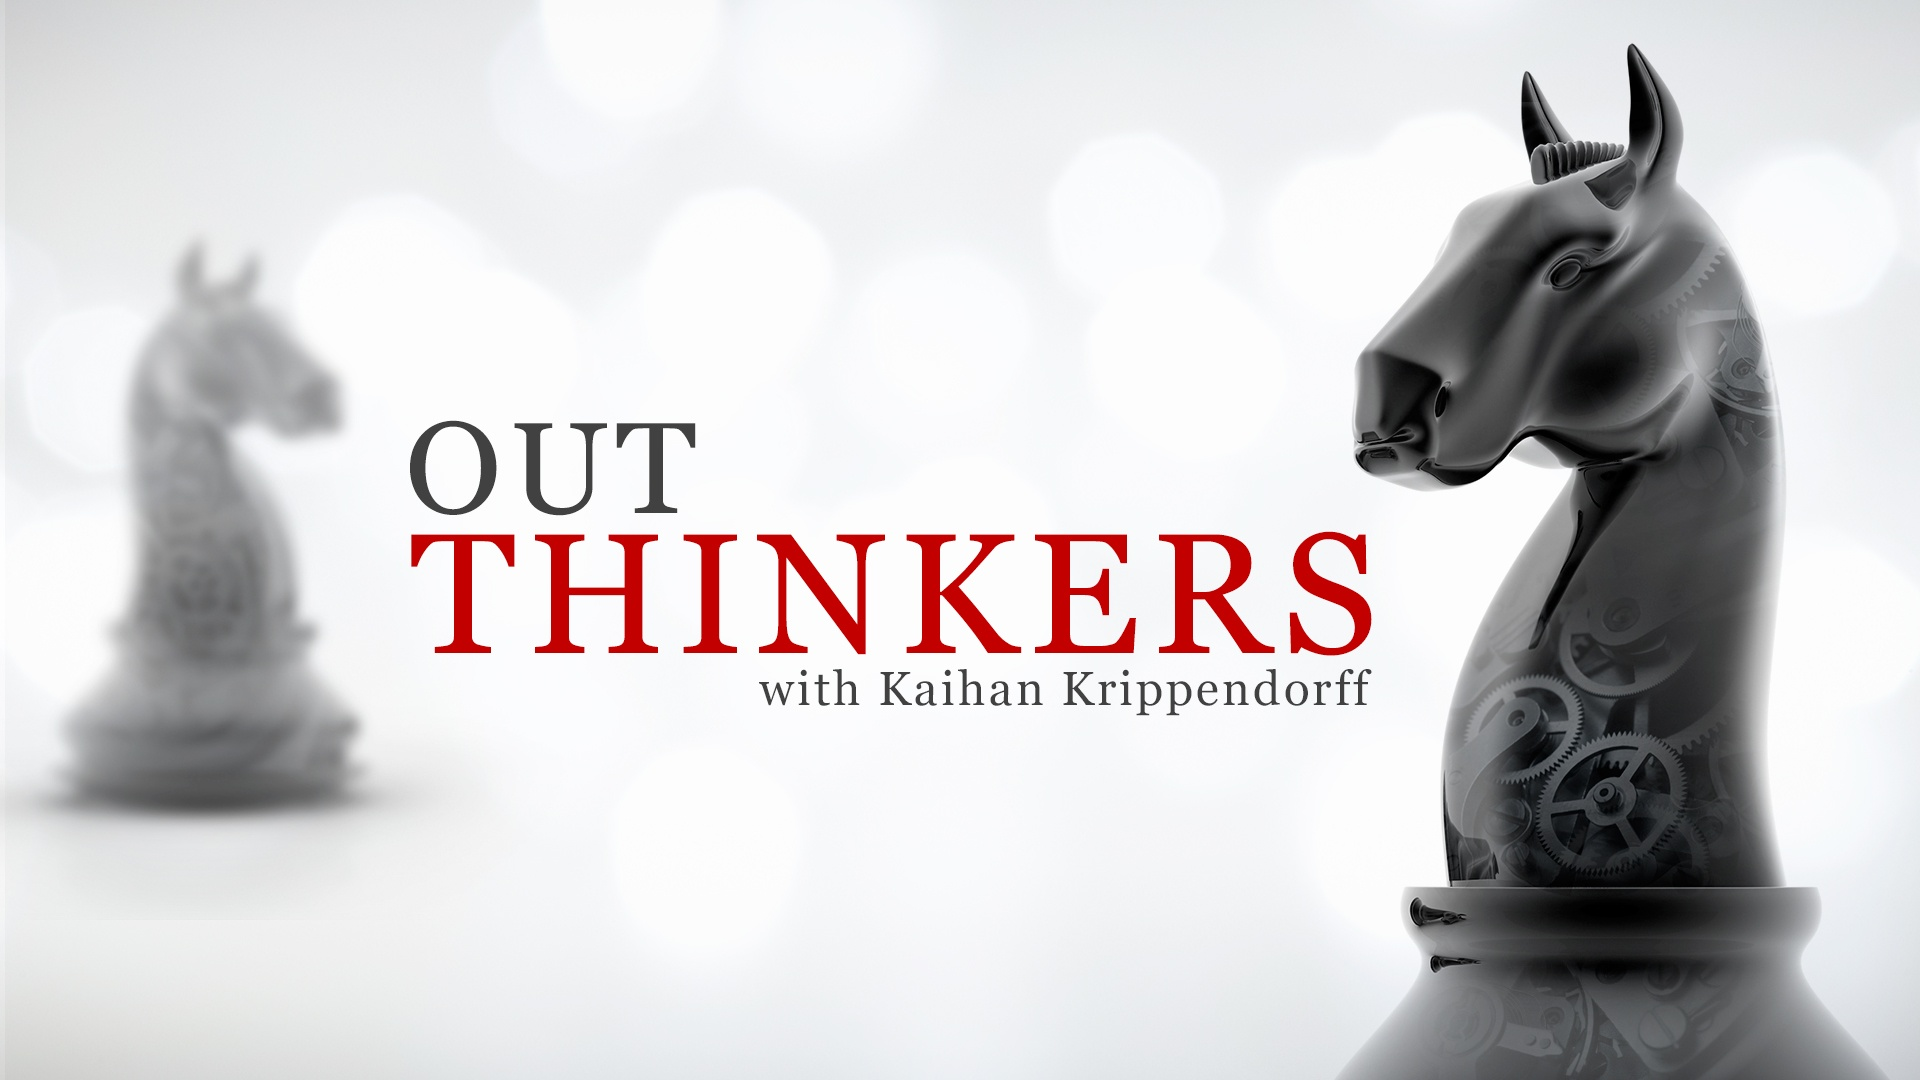 Outthink the Competition Chess Piece-1.jpg